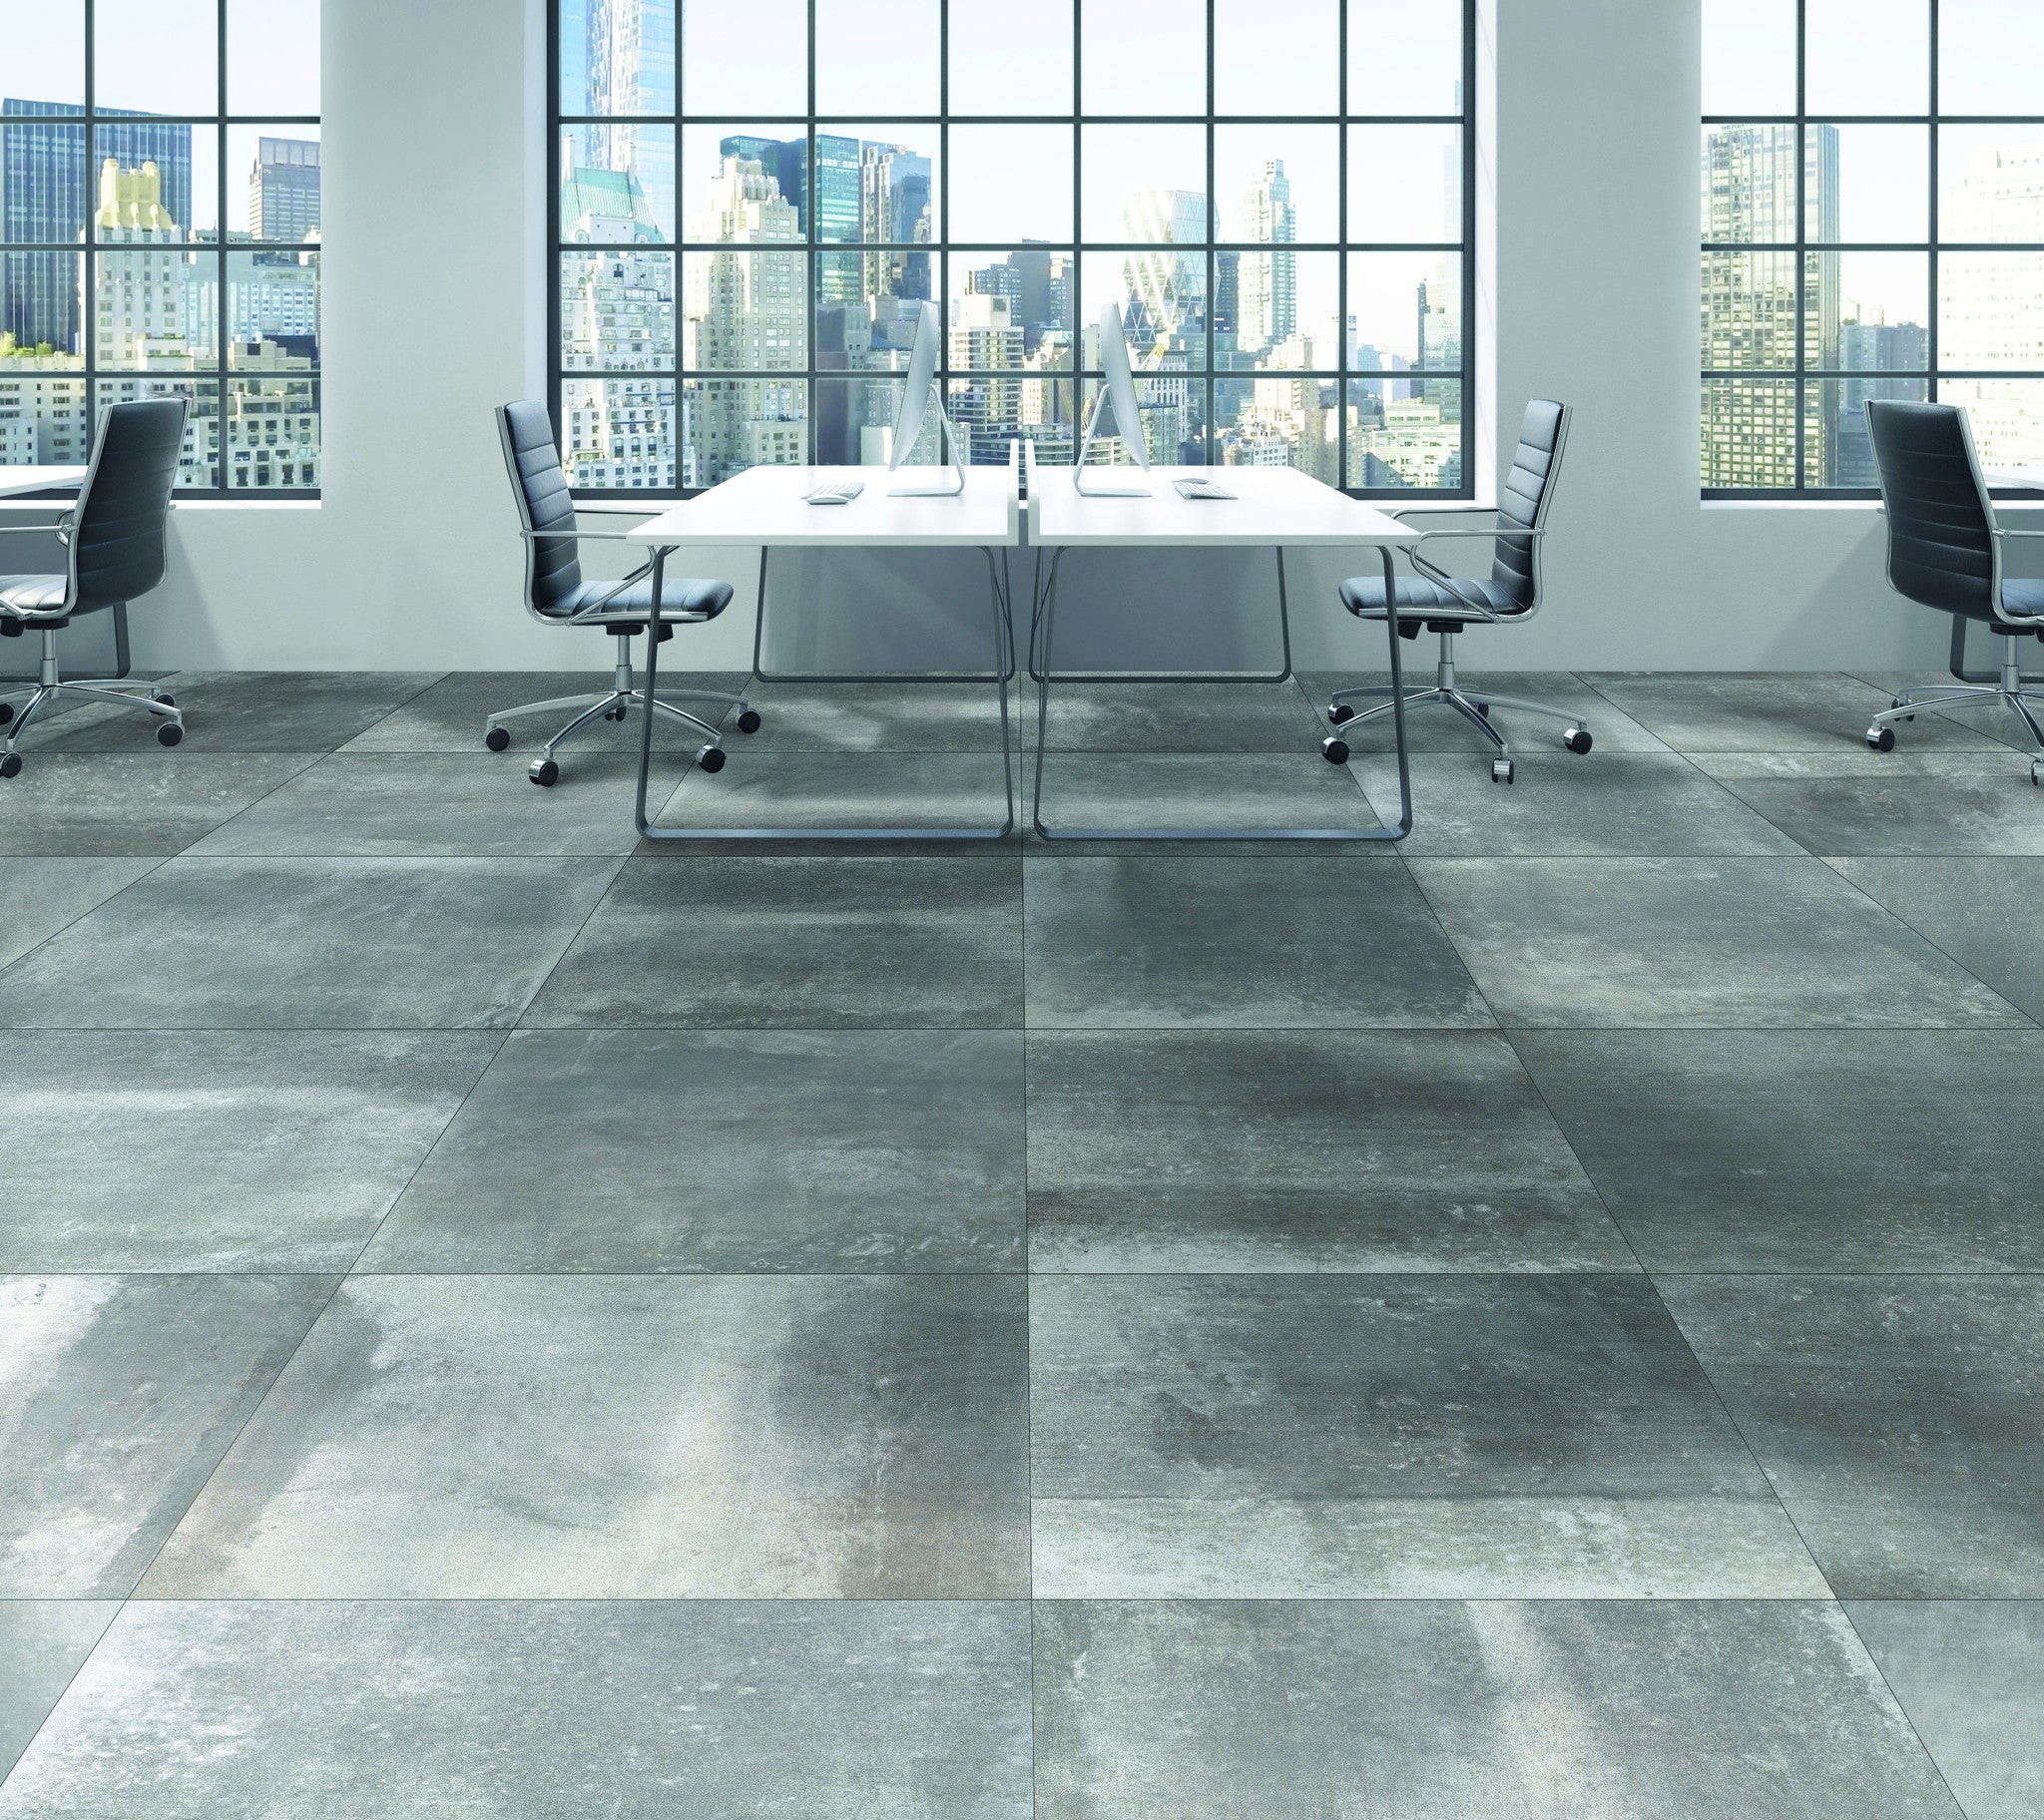 Home Office Vinyl Flooring Tiles In Dubai: Huge Range Of Wall & Floor Tiles For Offices & Businesses